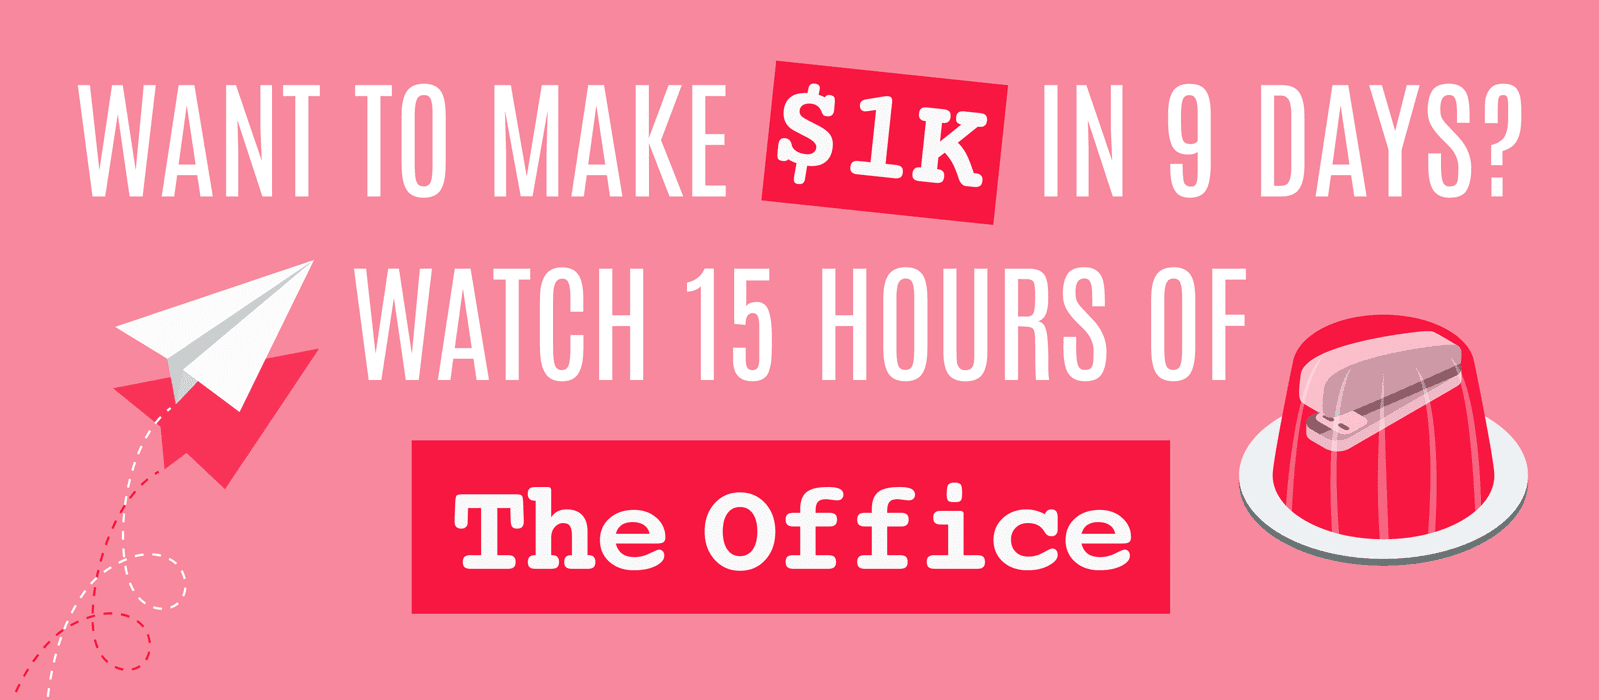 Want to make $1k in 9 days? Watch 15 hours of The Office